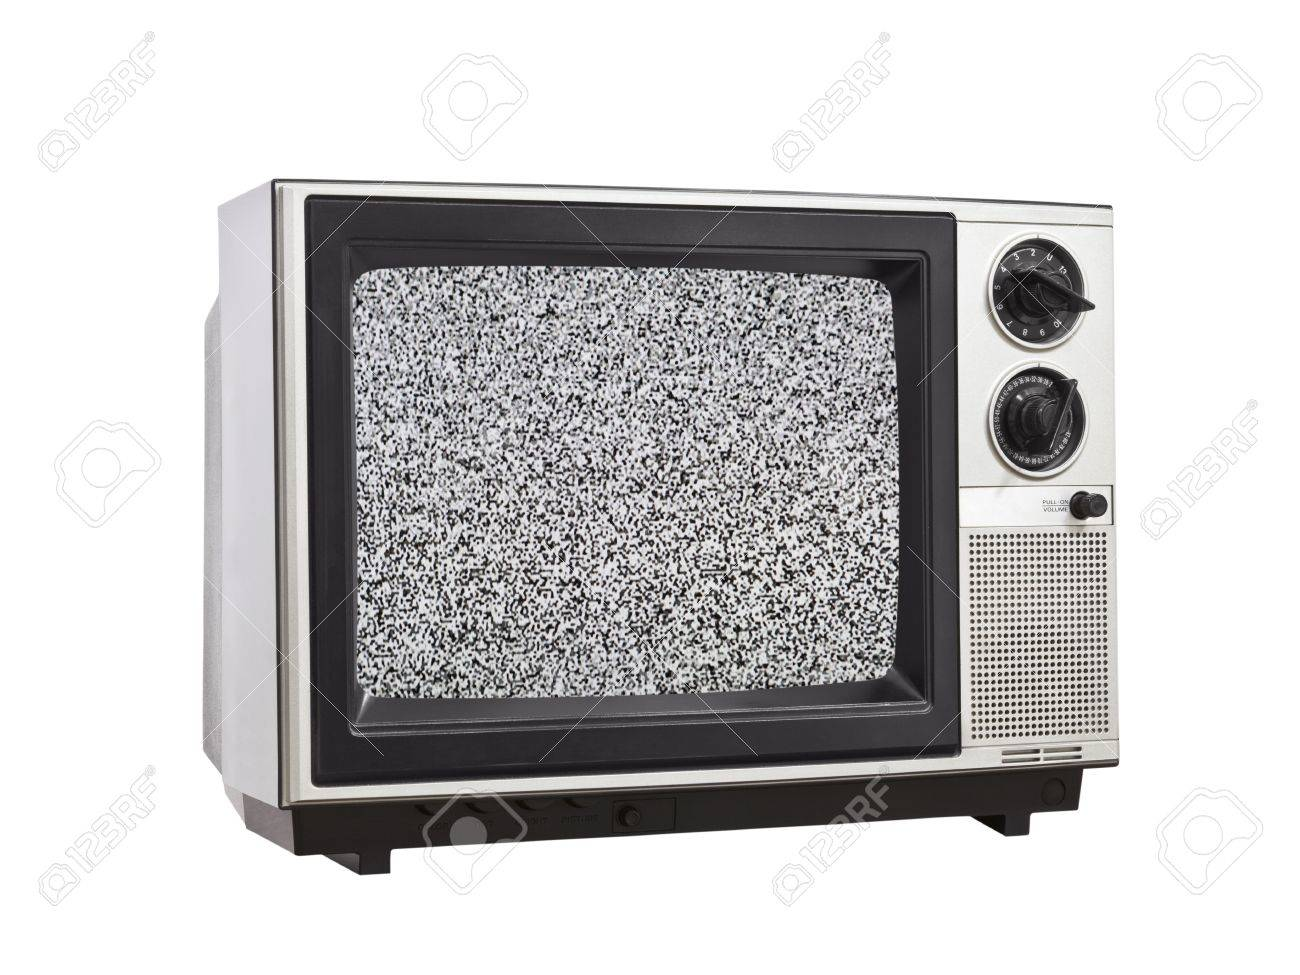 Vintage Television isolated with static screen. Stock Photo - 14331499